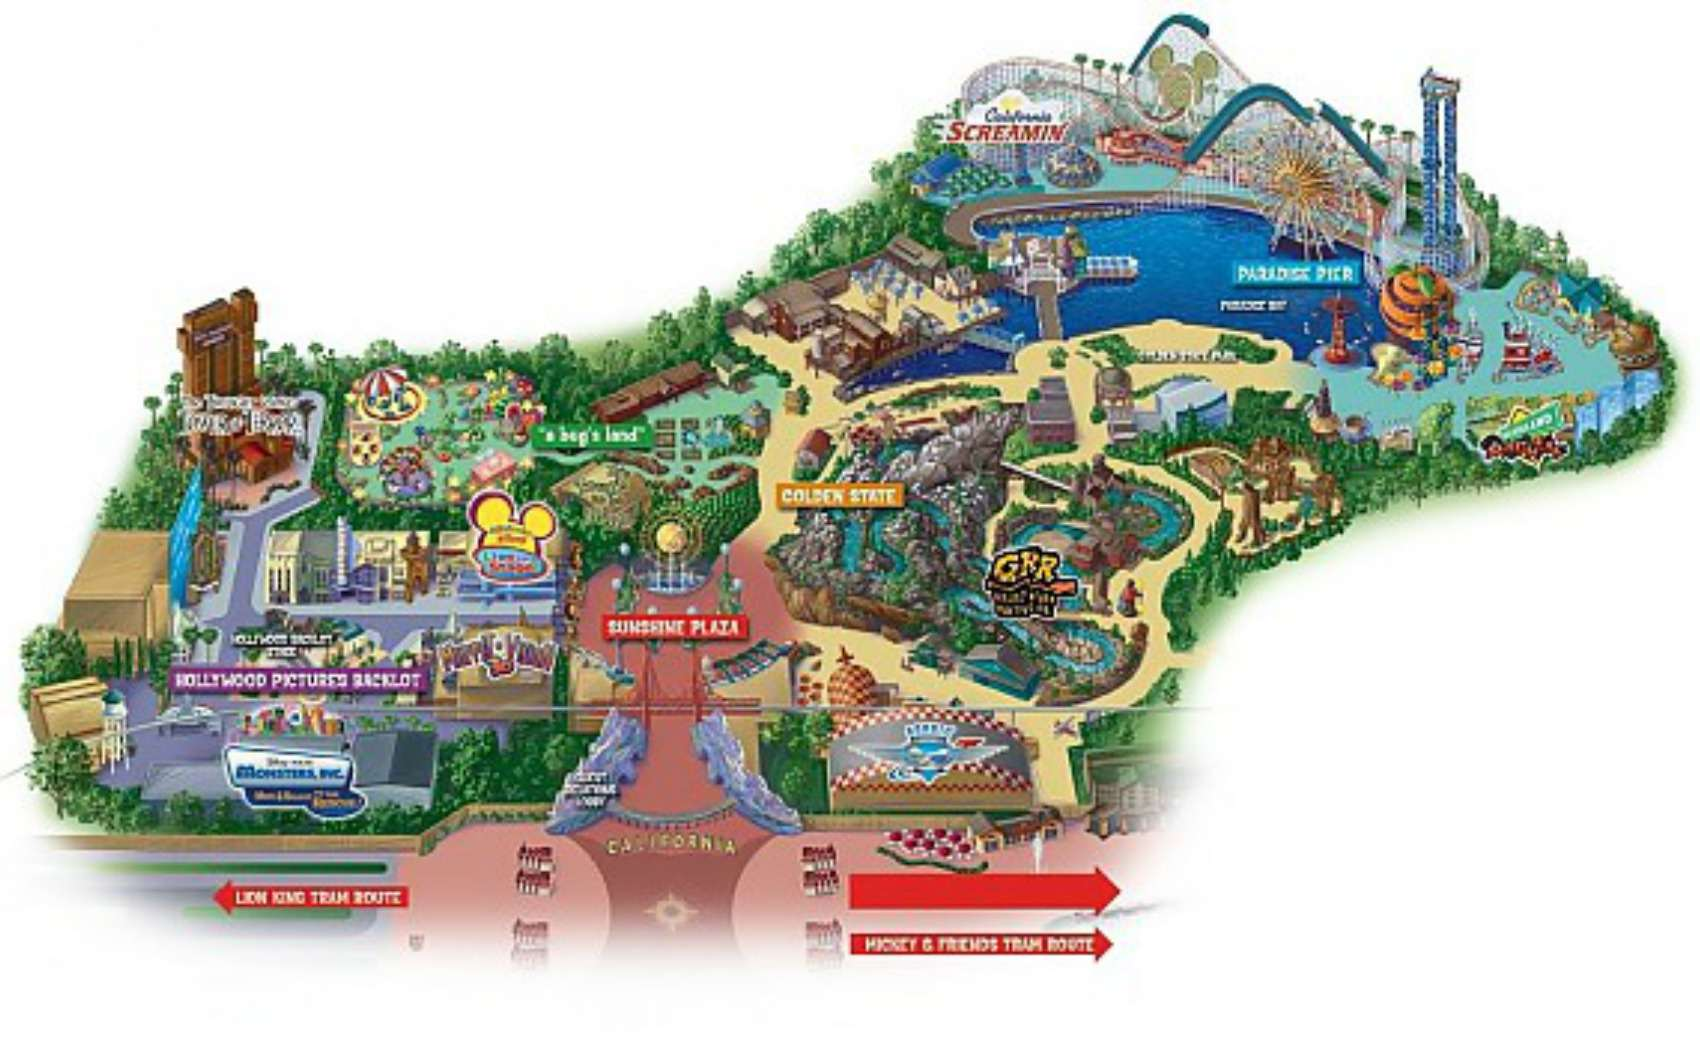 Image Disneys California Adventurejpg Poohs Adventures Wiki - Disney adventure